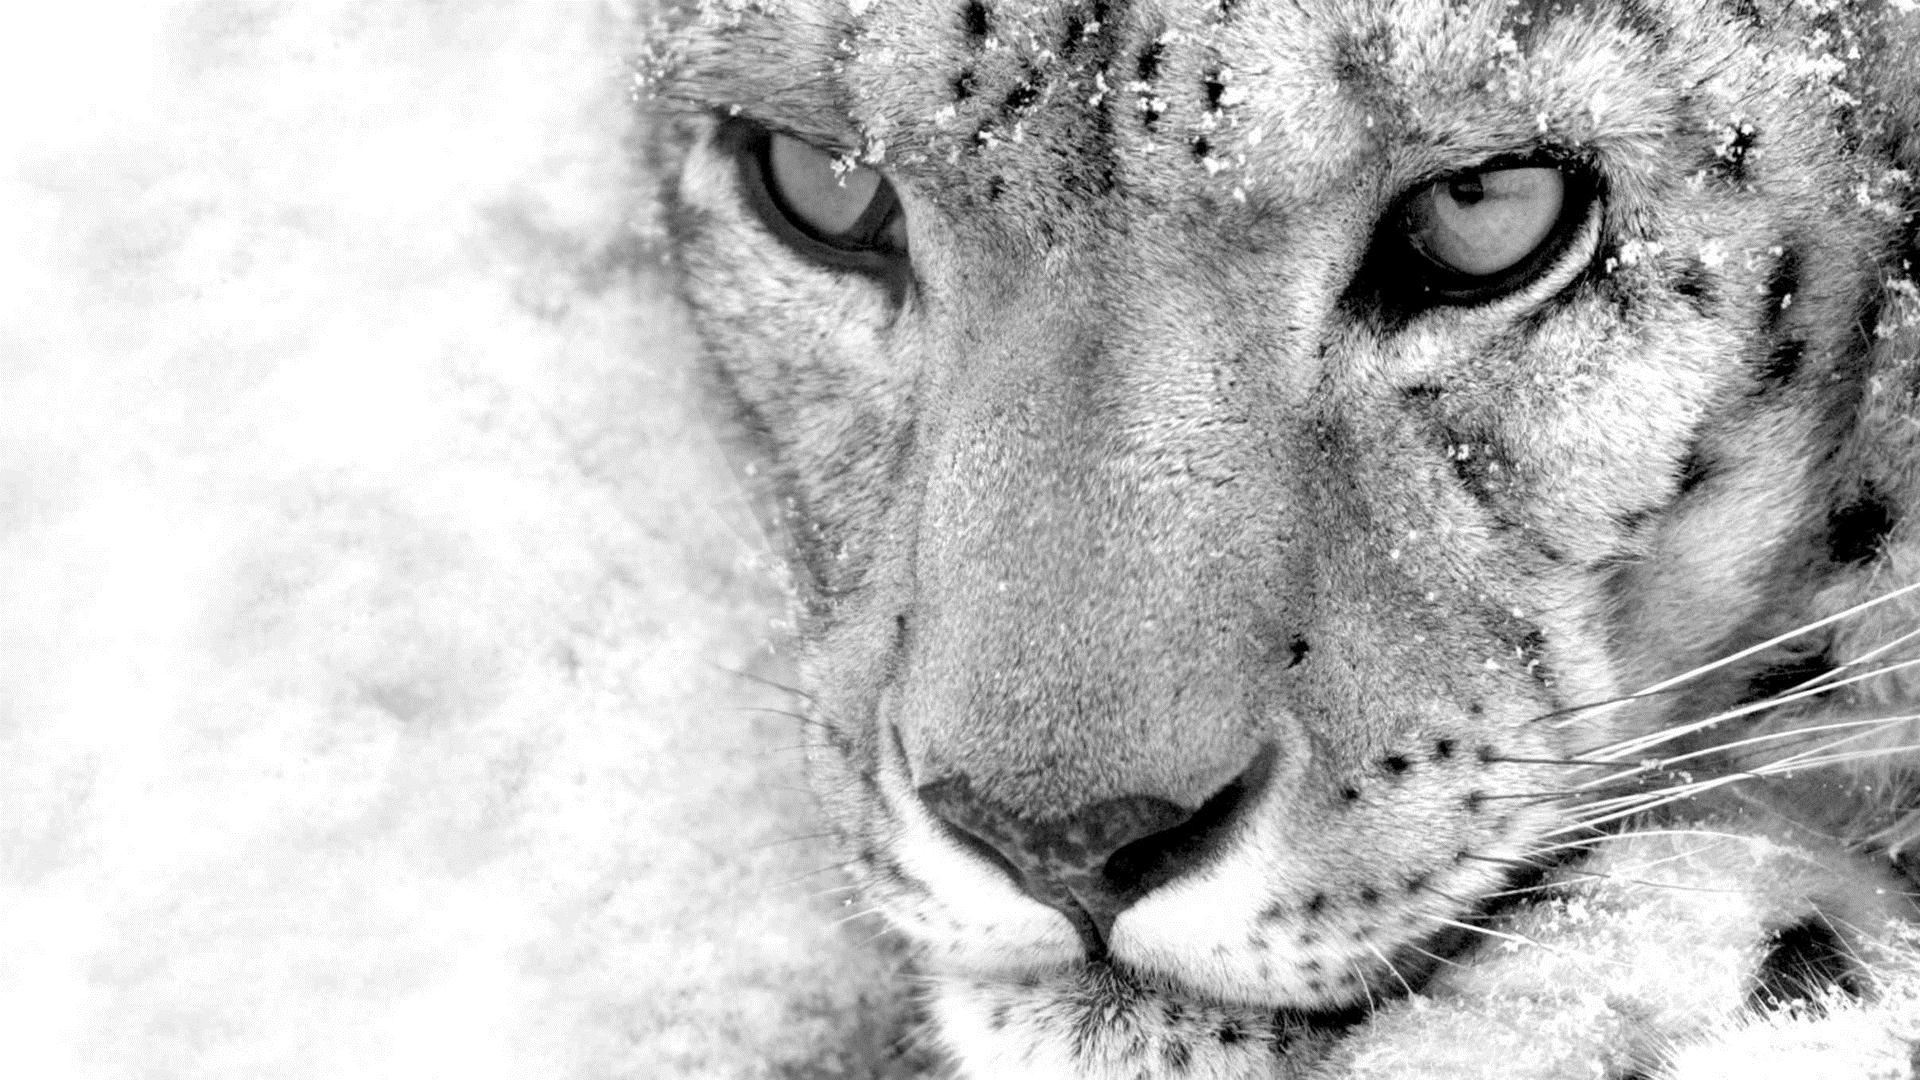 leopard wallpapers free download